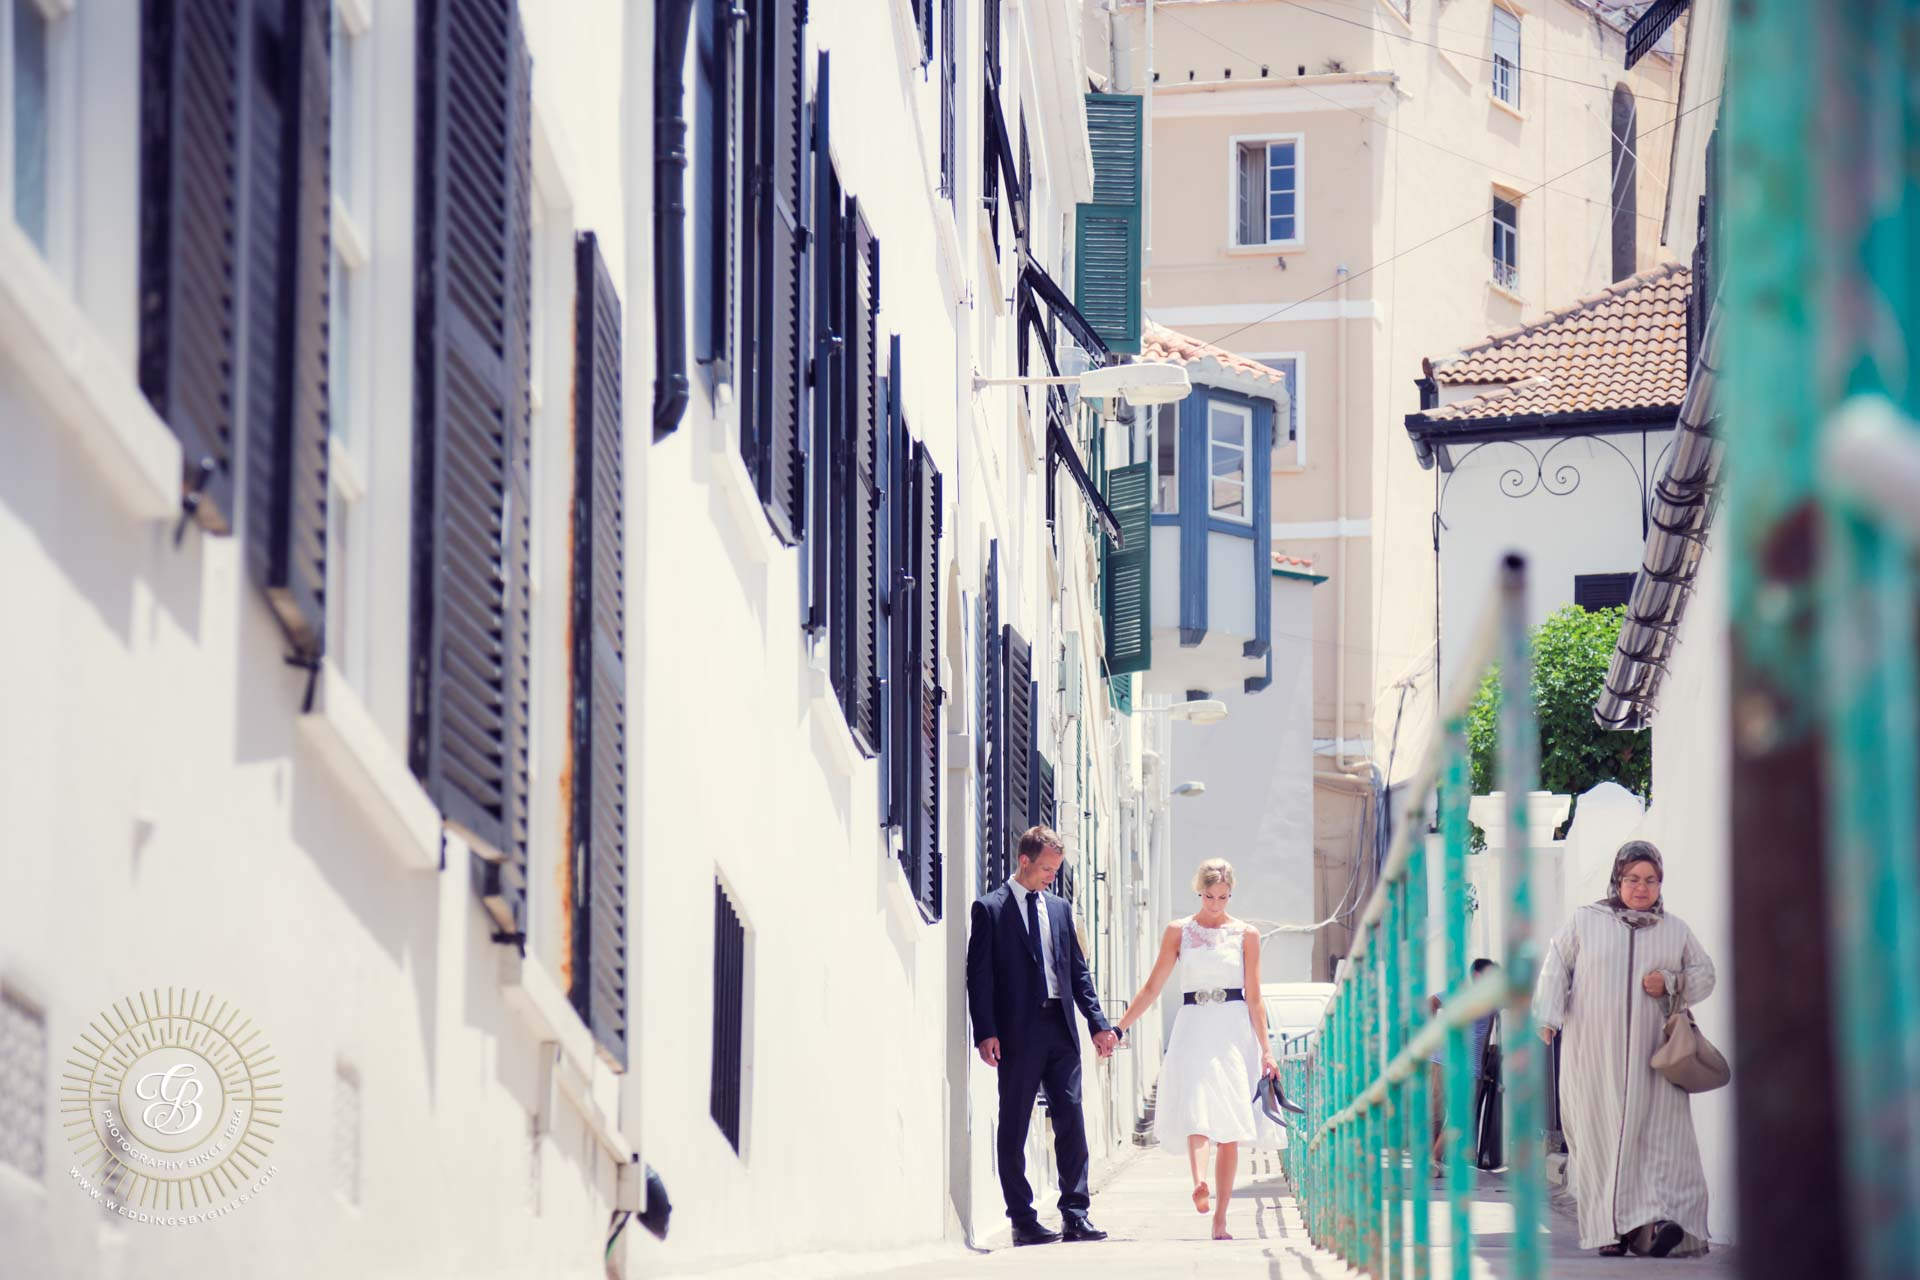 Wedding Photography in The Old Town, Gibraltar